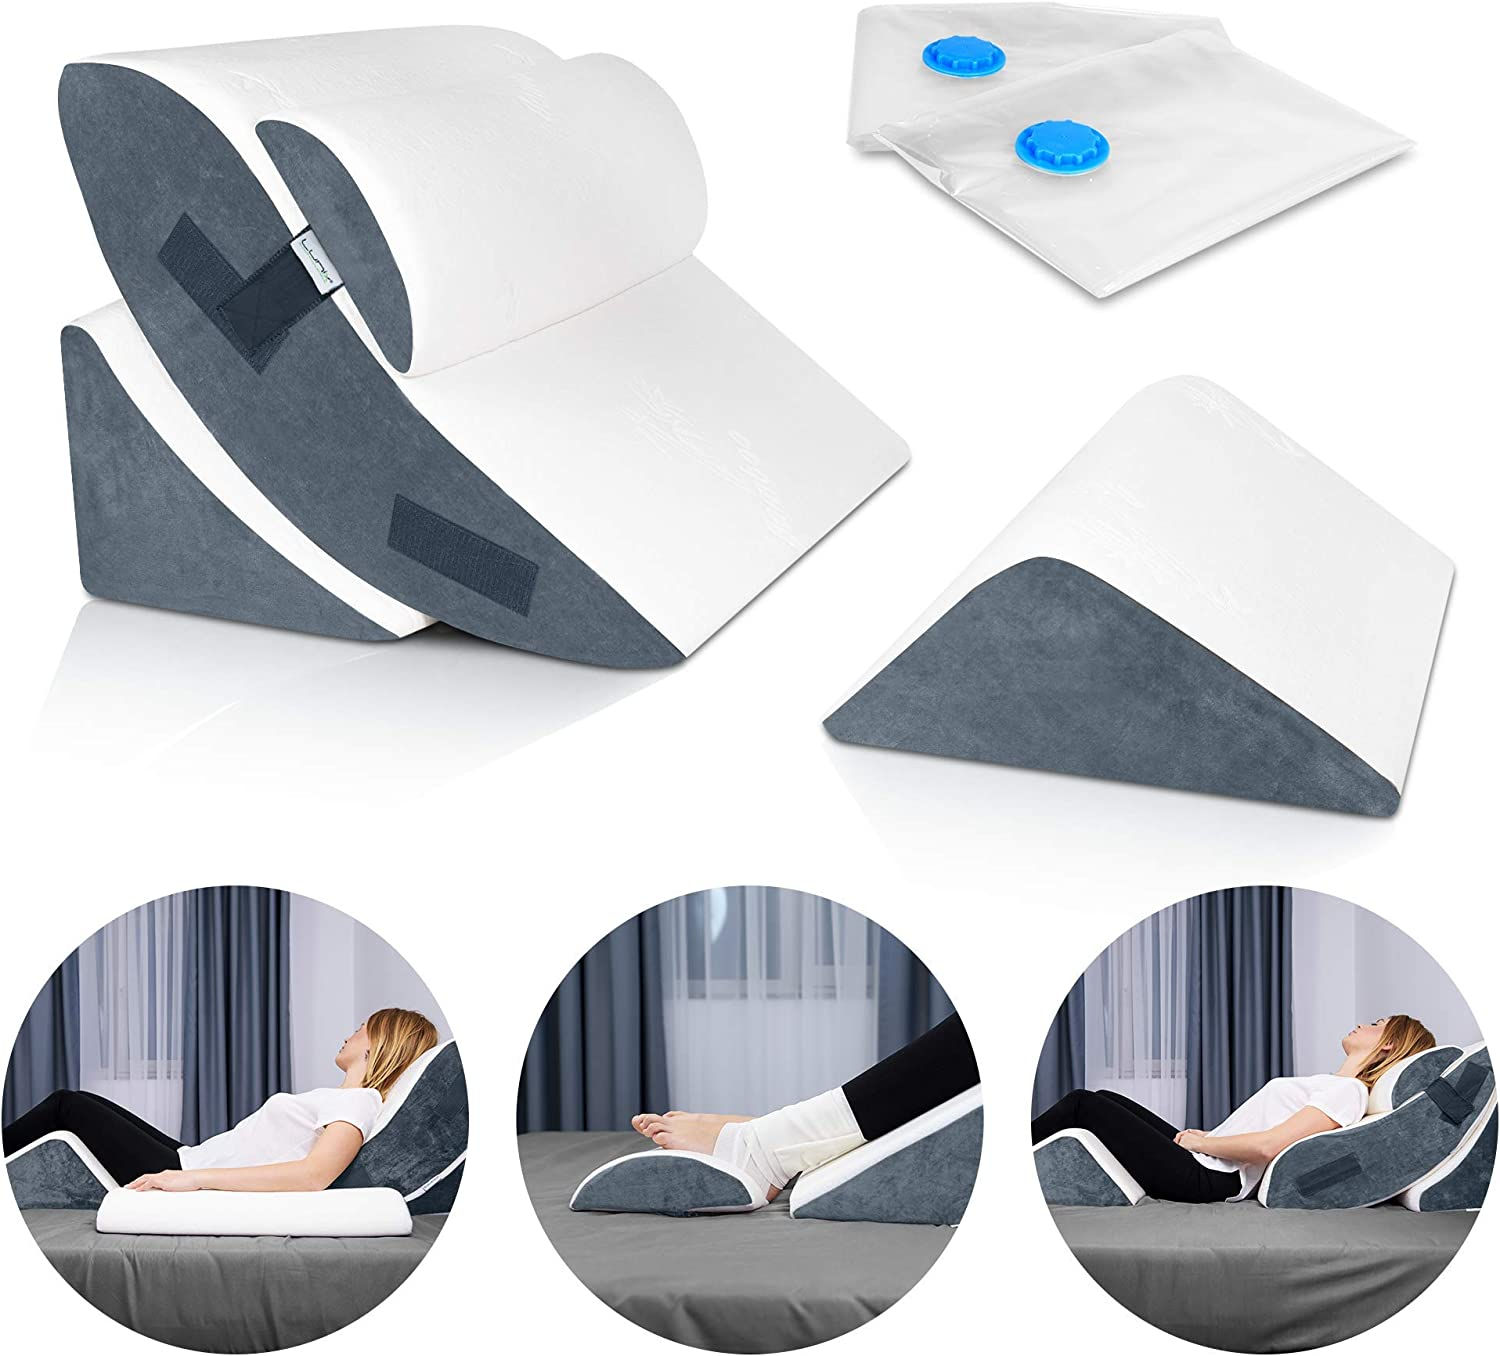 Lunix LX5 4pcs Orthopedic Bed Wedge Pillow Set, Post Surgery Memory Foam for Back, Neck and Leg Pain Relief. Sitting Pillow, Comfortable and Adjustable Pillows Acid Reflux and GERD for Sleeping Navy: Kitchen & Dining